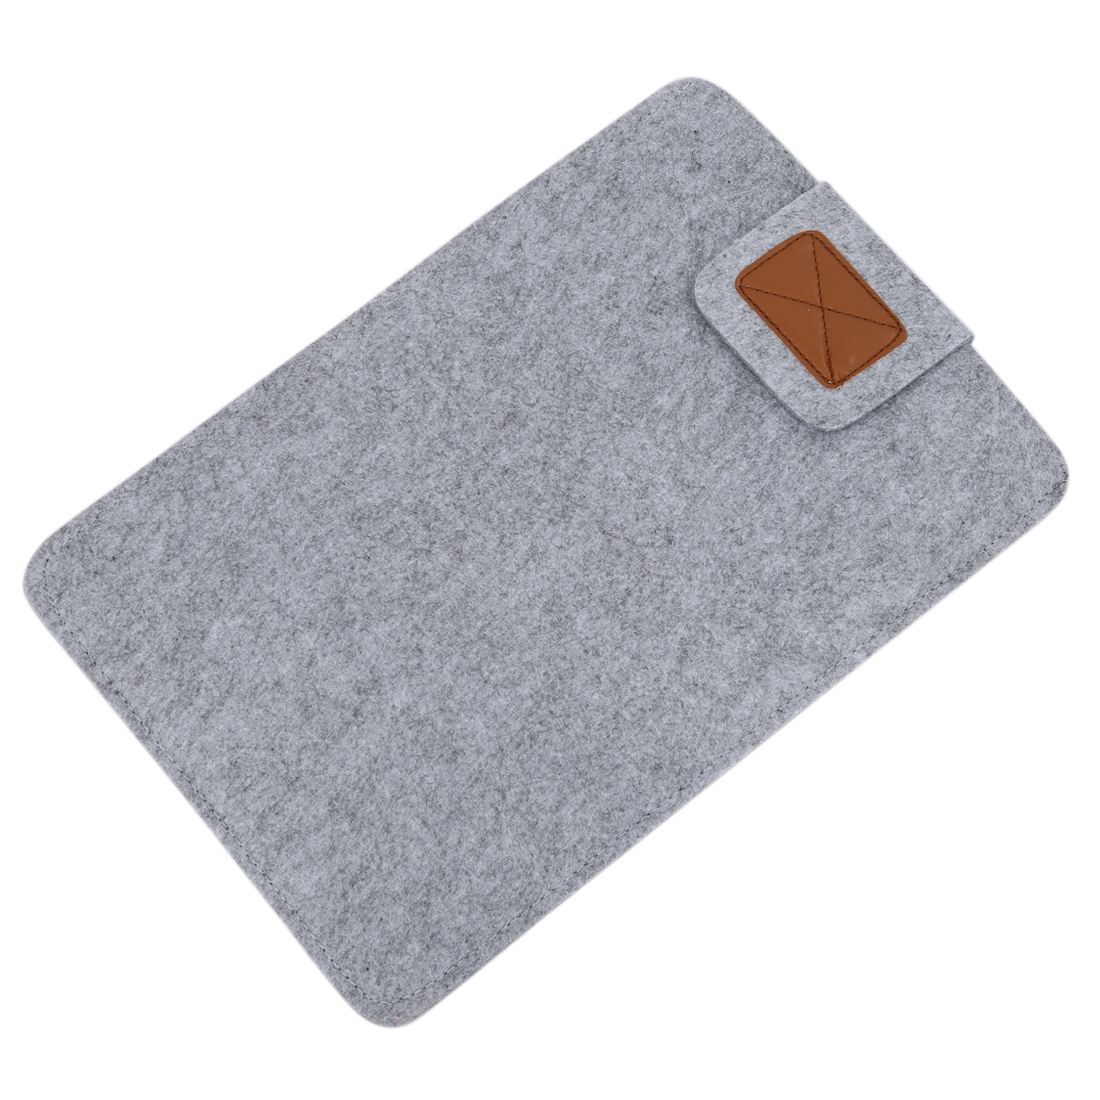 Soft Sleeve Bag Case for PC Case for Macbook Air Ultrabook Laptop Notebook Tablet PC Applied - Gray 11 inch